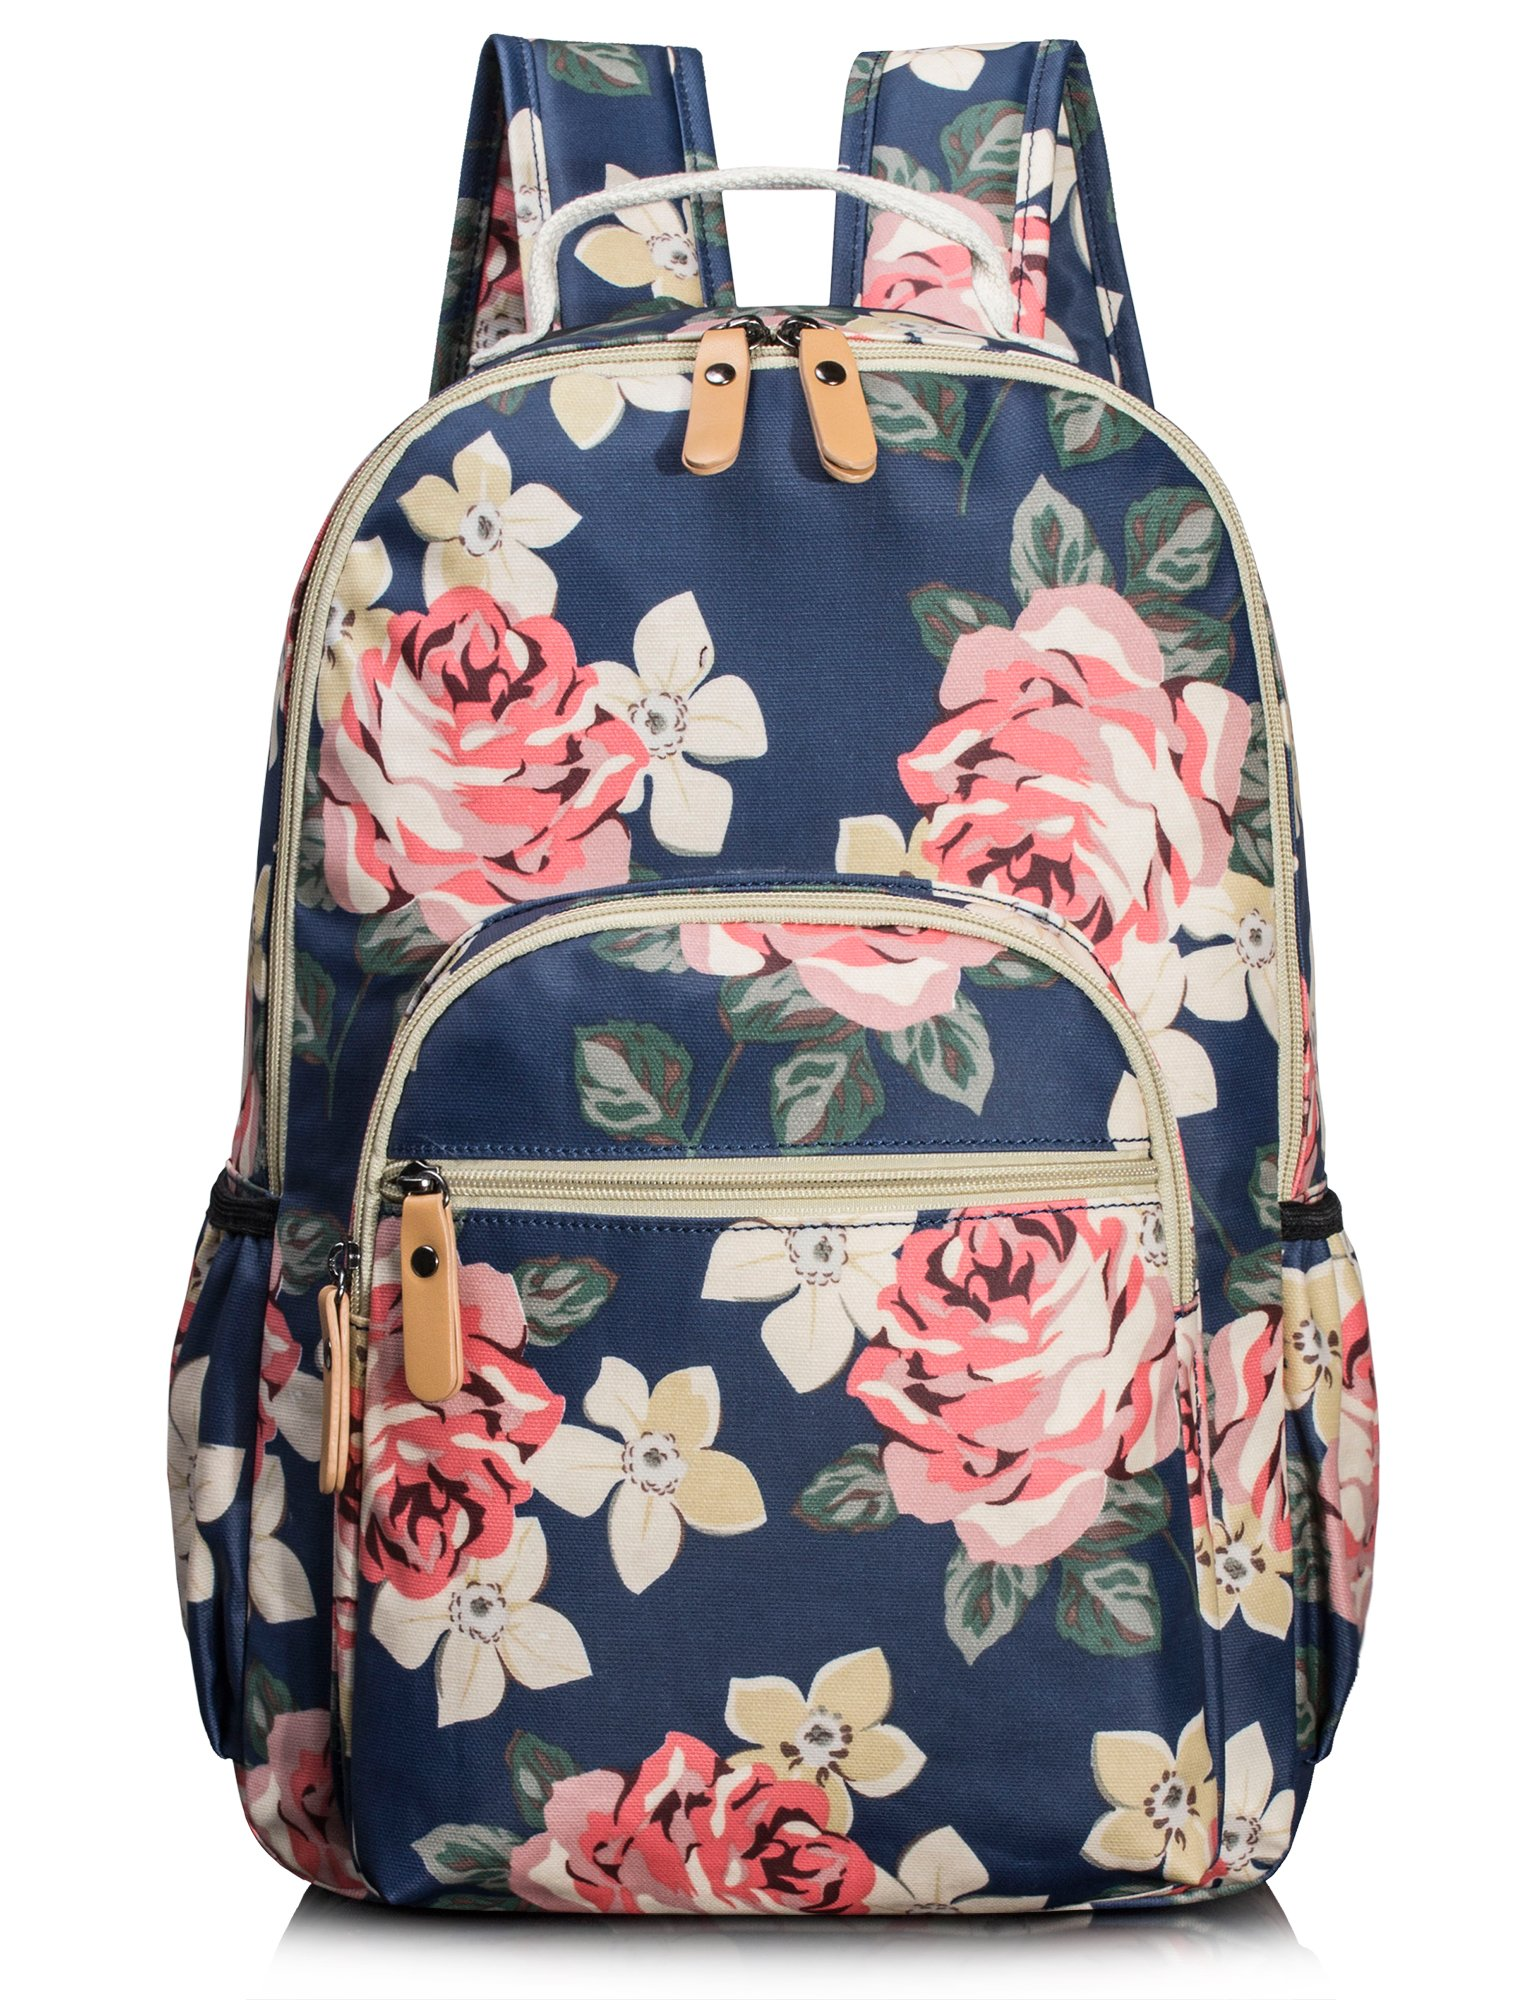 Leaper Floral Water-resistant Laptop Backpack College Bags Daypack Dark Blue by Leaper (Image #1)